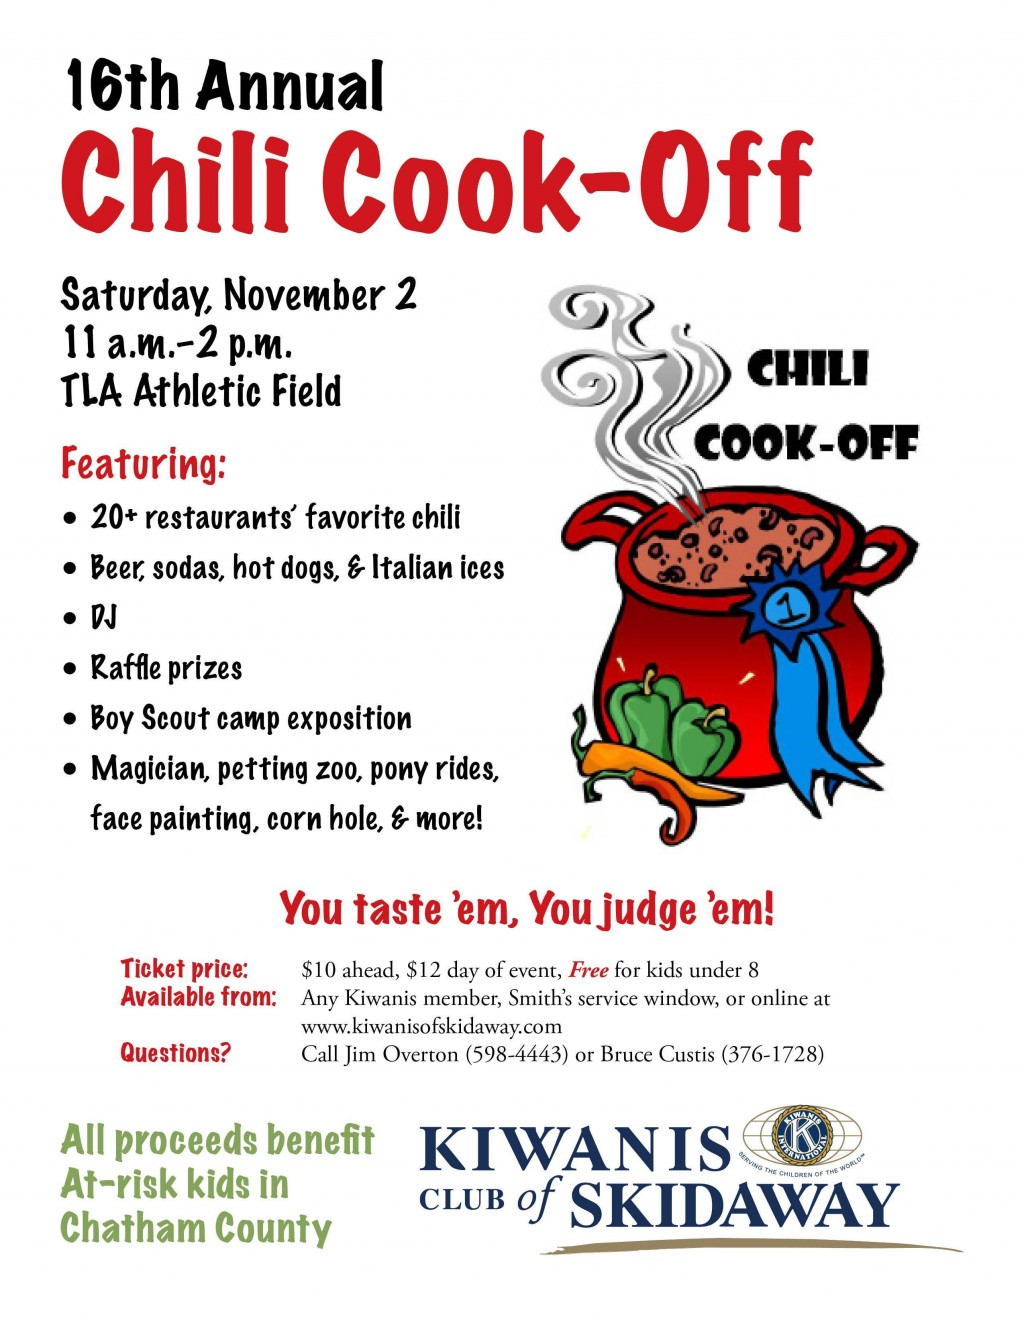 007 Stunning Chili Cook Off Flyer Template Example  Halloween Office PowerpointLarge